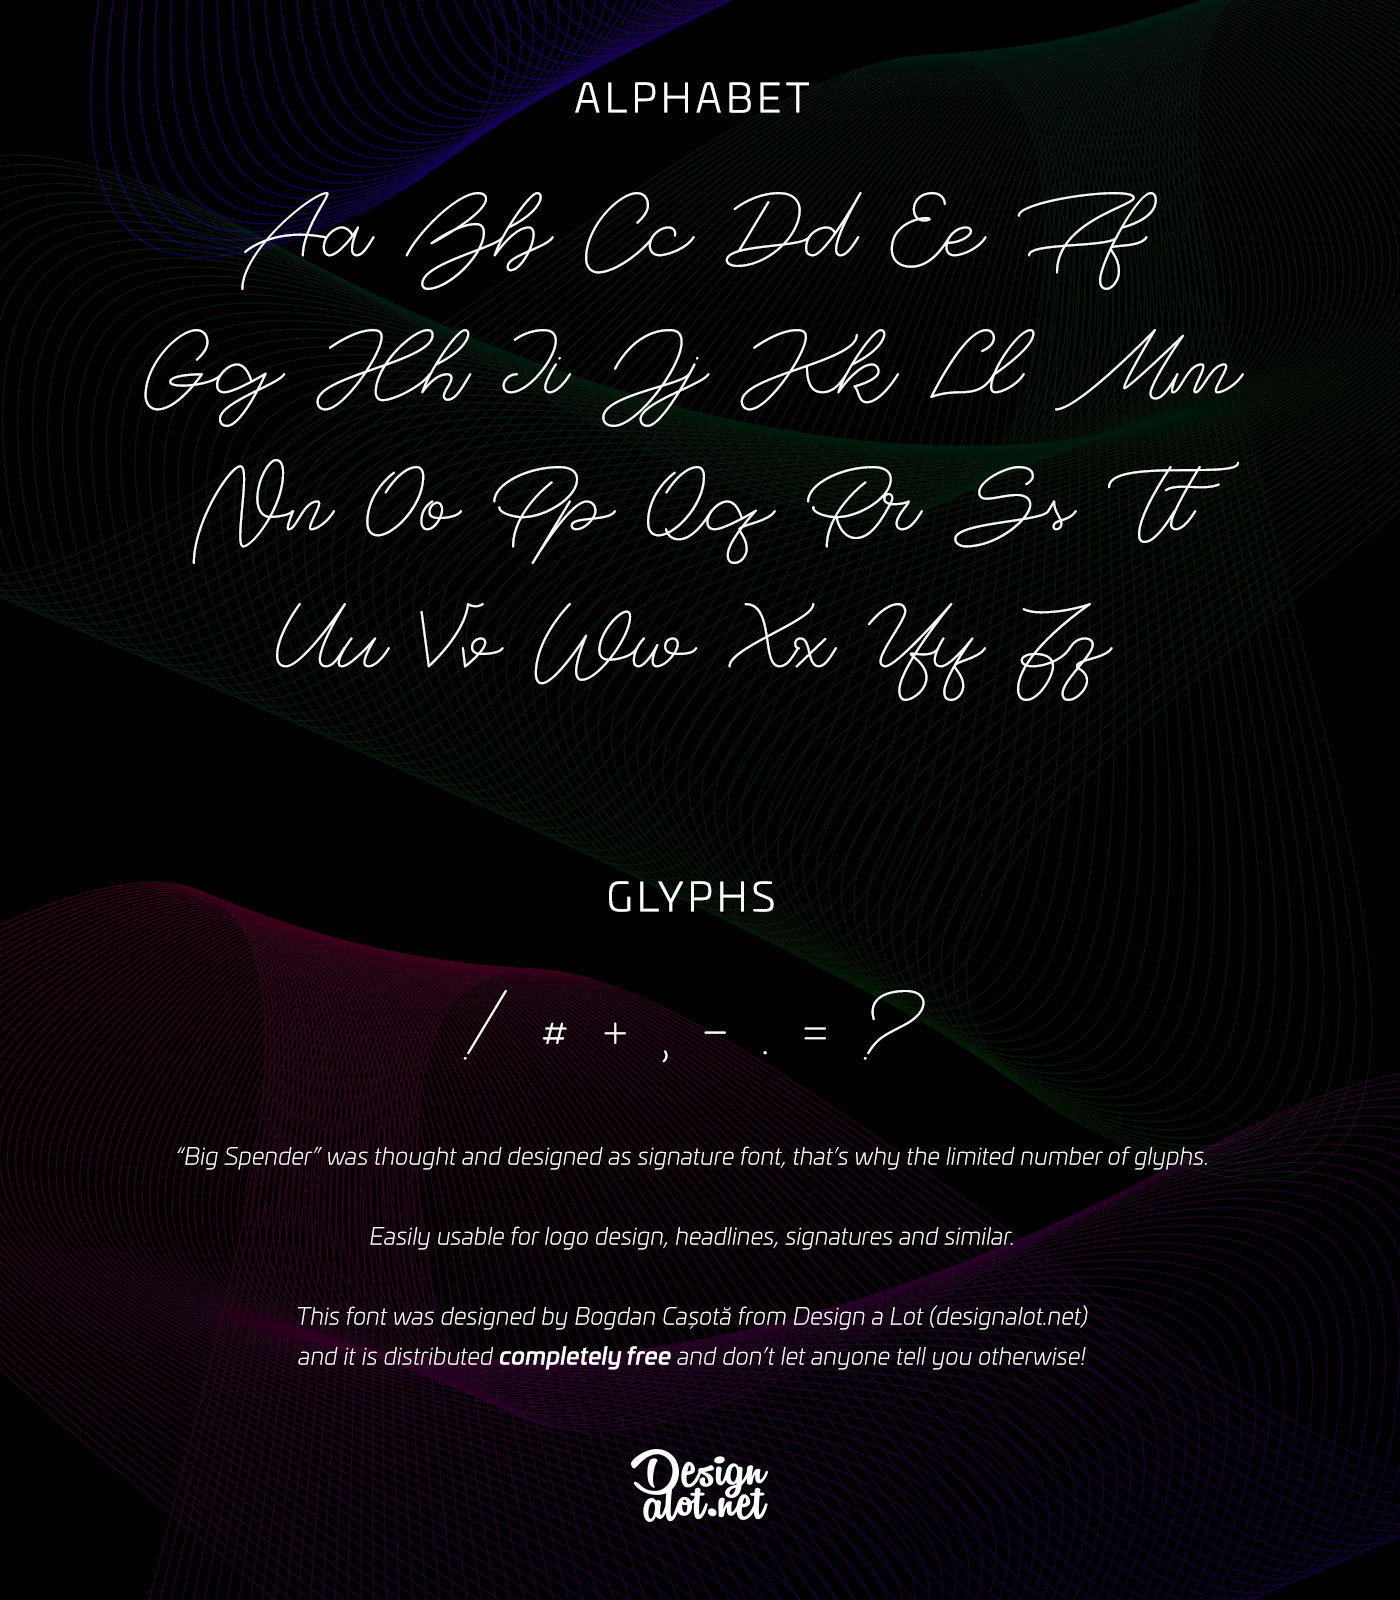 big-spender-free-signature-font-designalot-cut-preview